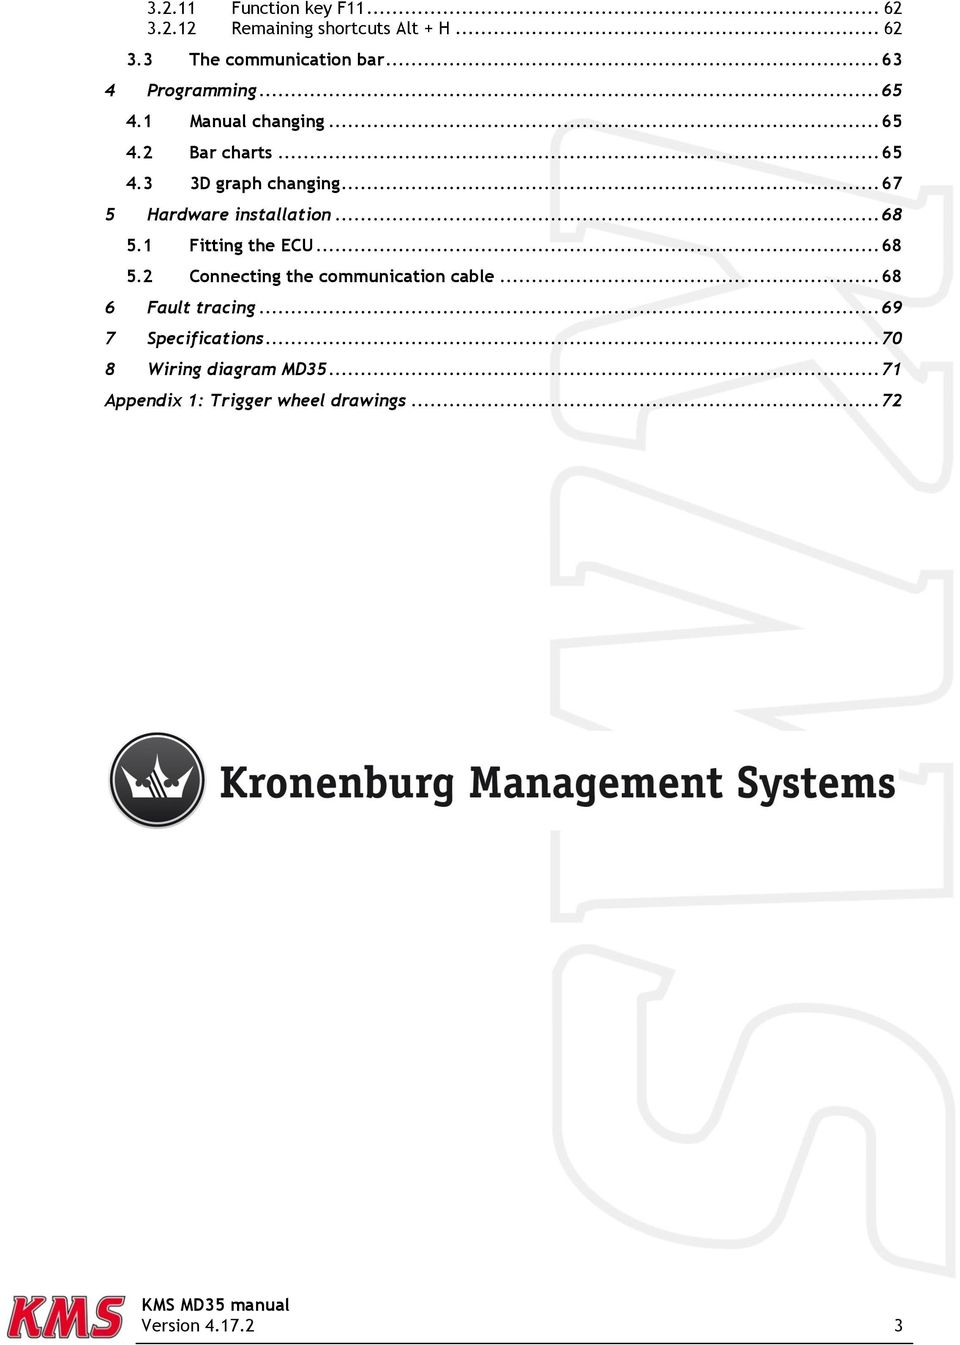 Contents Page Kms Md35 Manual Version Pdf Key Wiring Diagram Chart 67 5 Hardware Installation 68 51 Fitting The Ecu